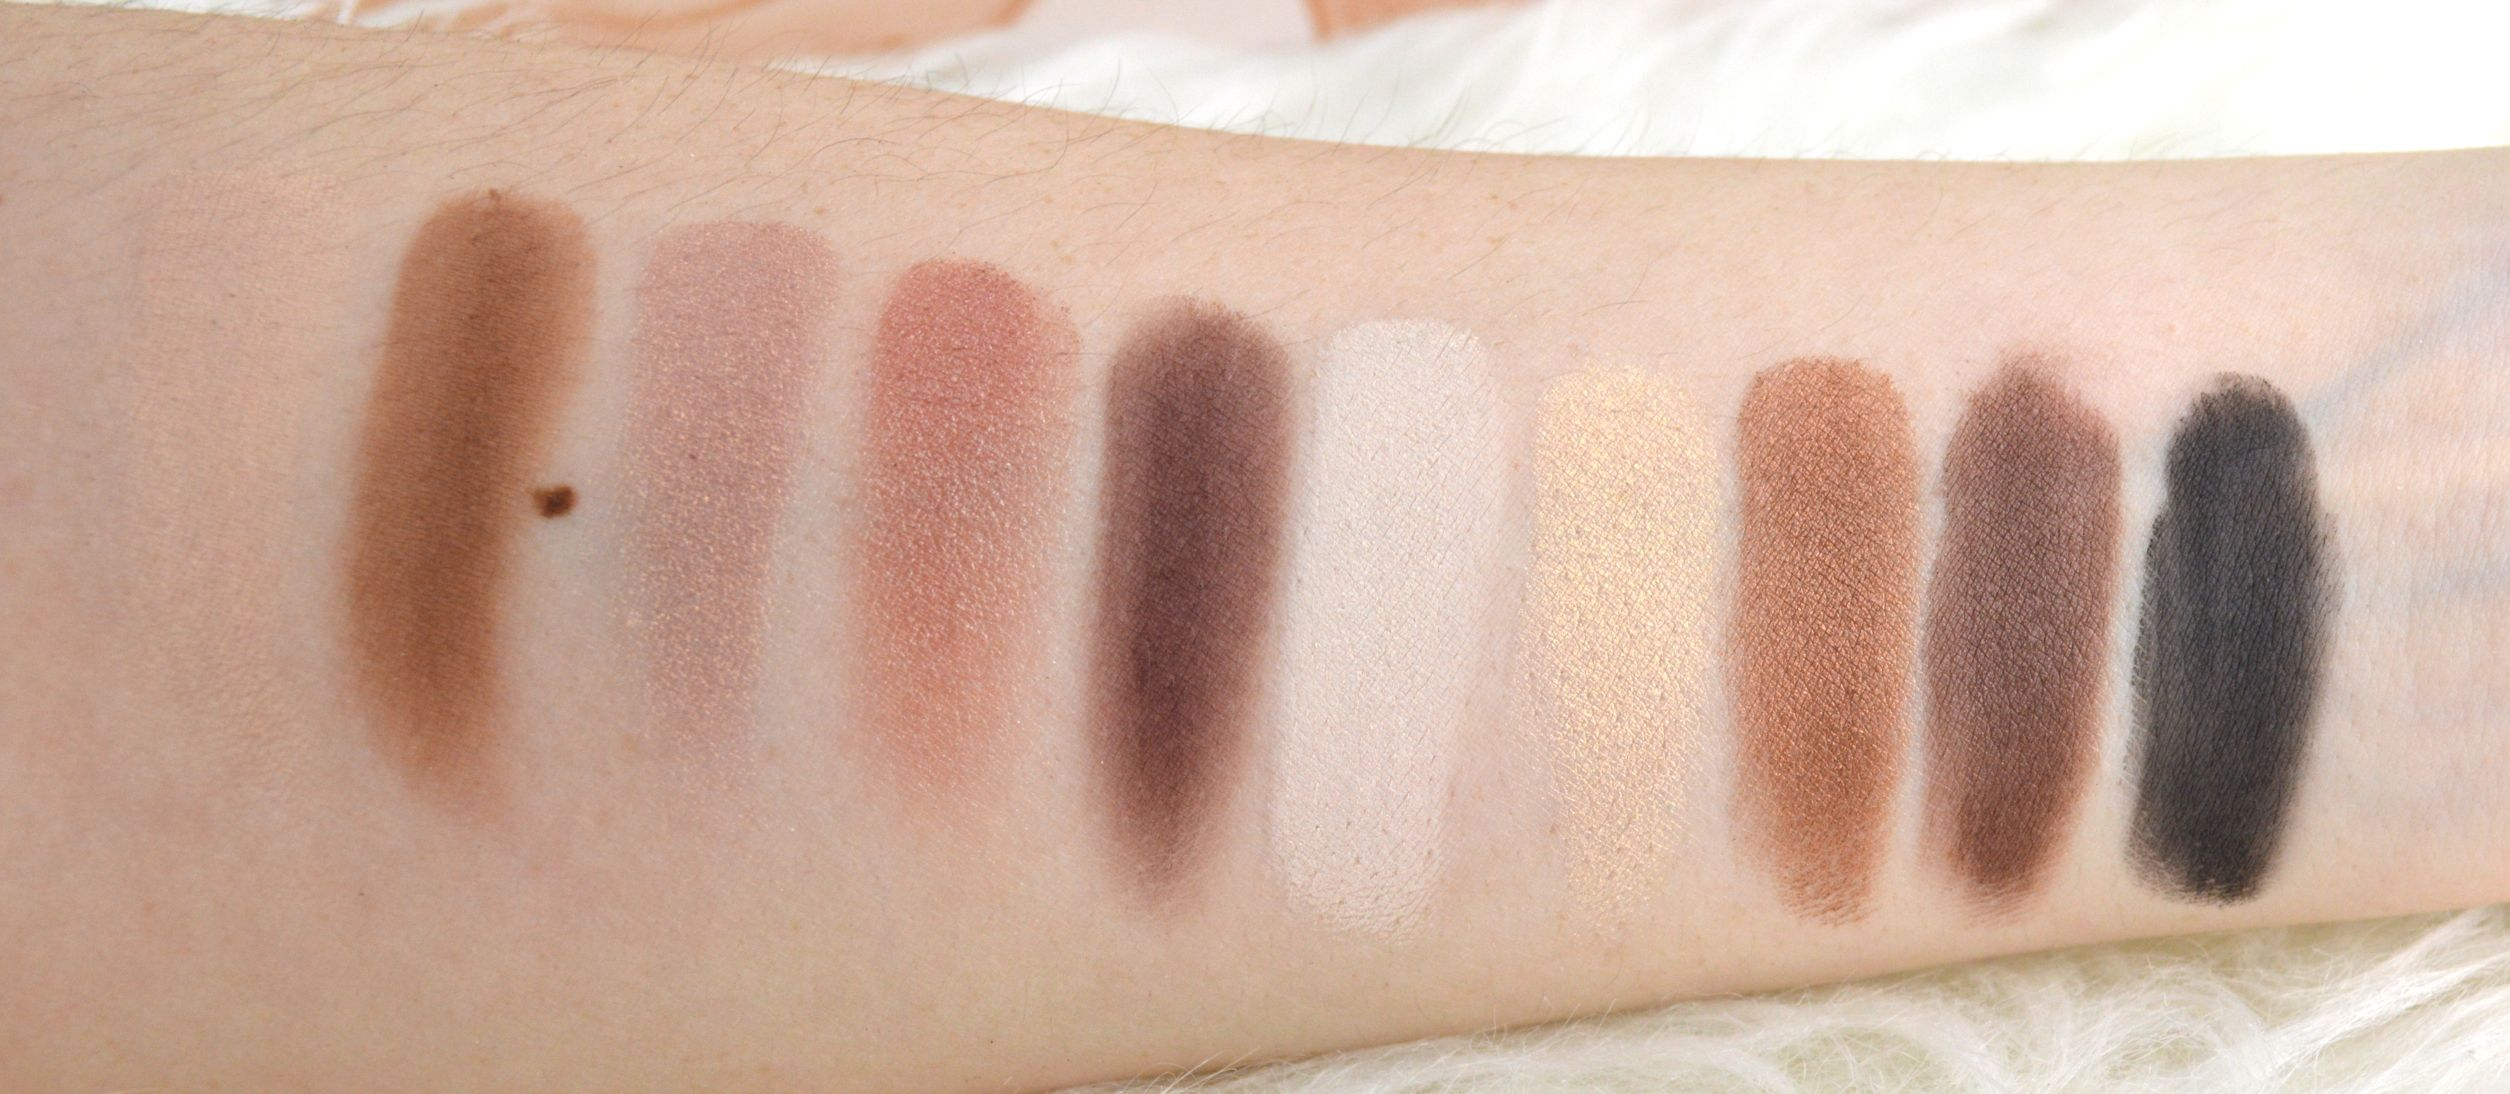 zoeva_naturally_yours_palette_swatches_alle